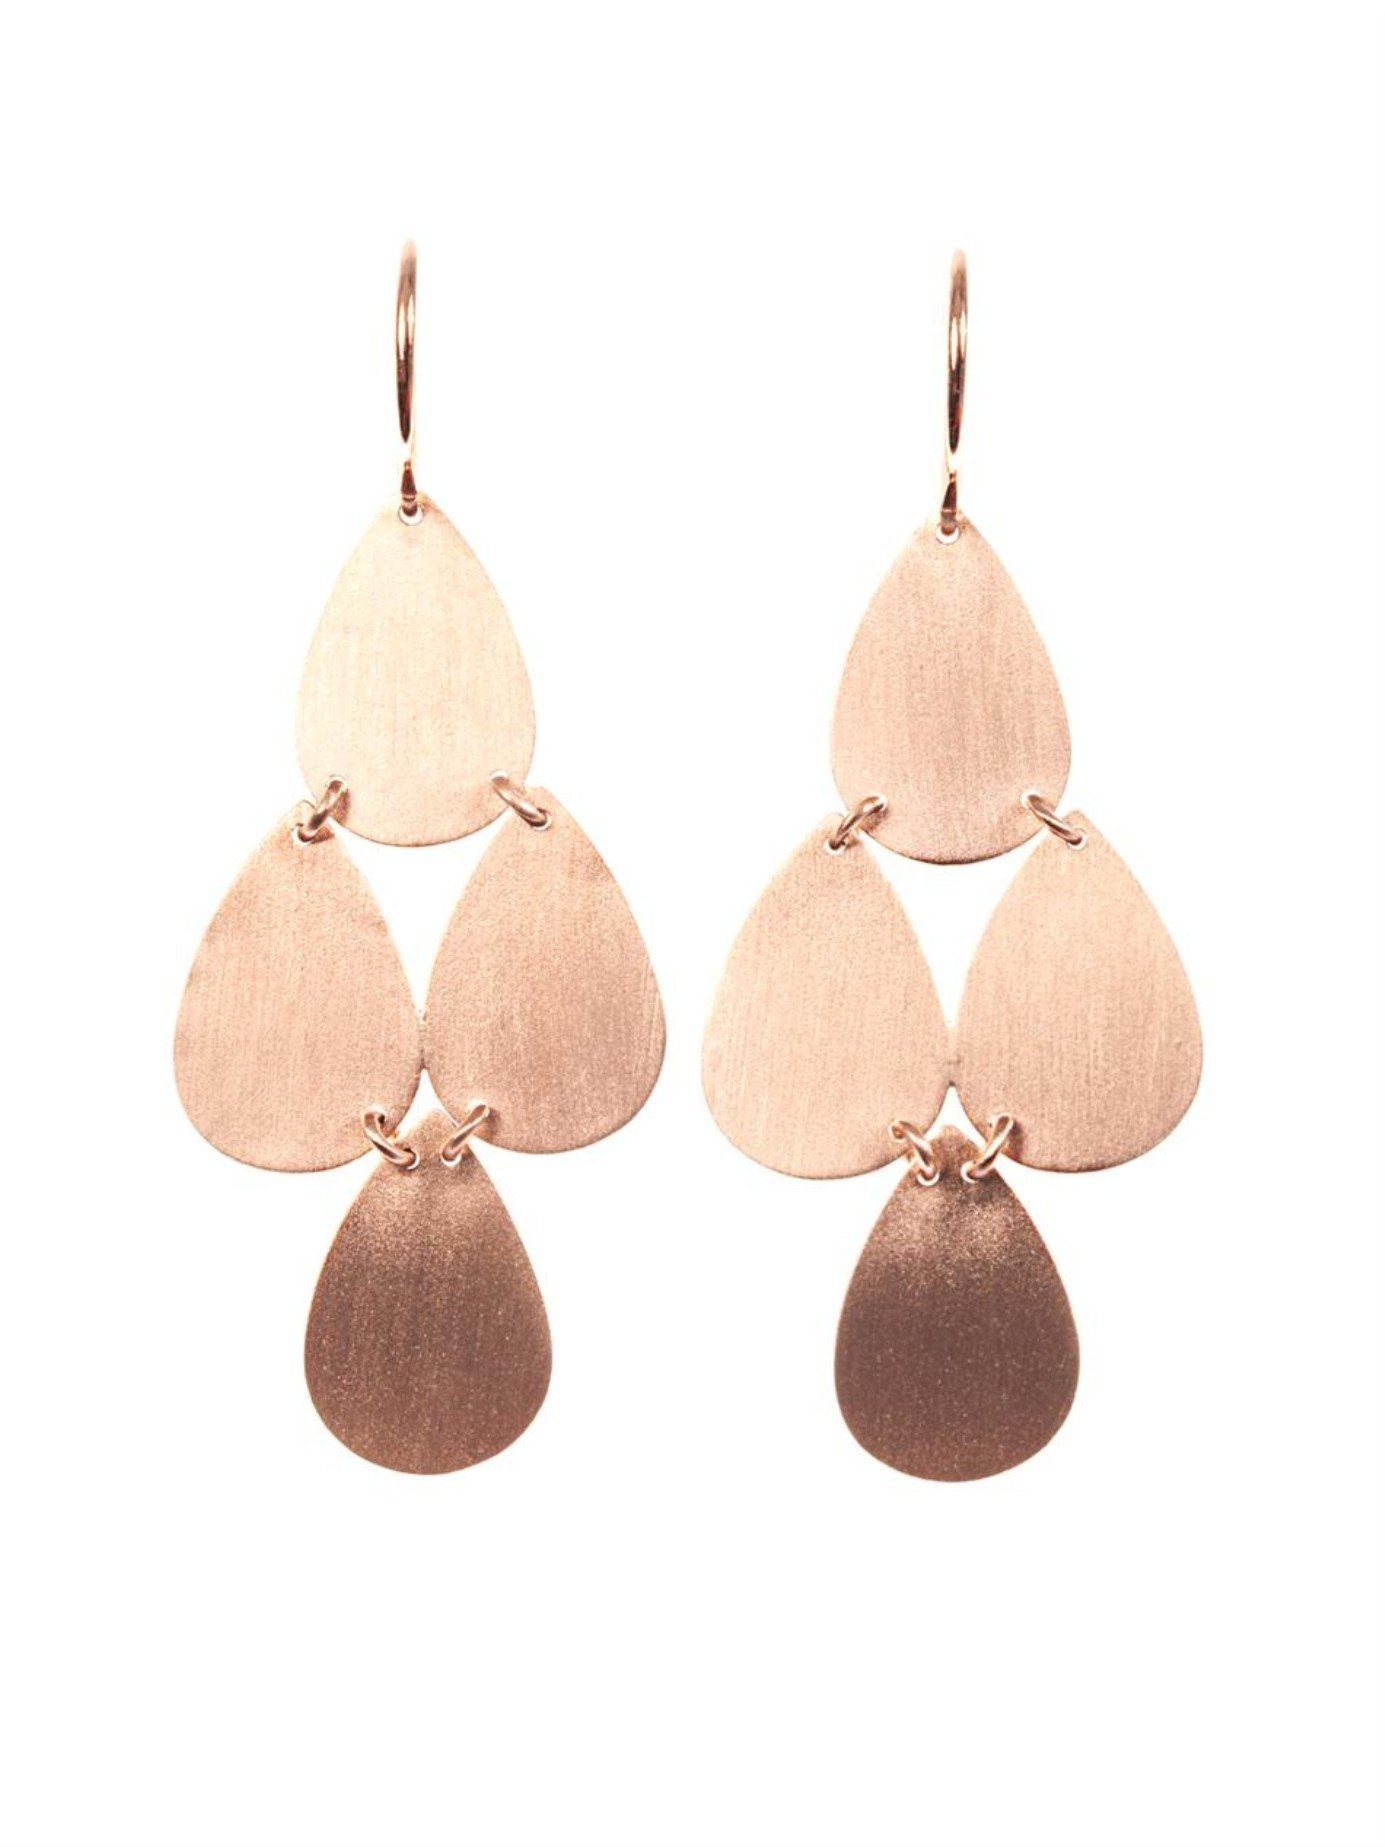 Lyst Irene neuwirth Rose Gold Chandelier Earrings in Pink